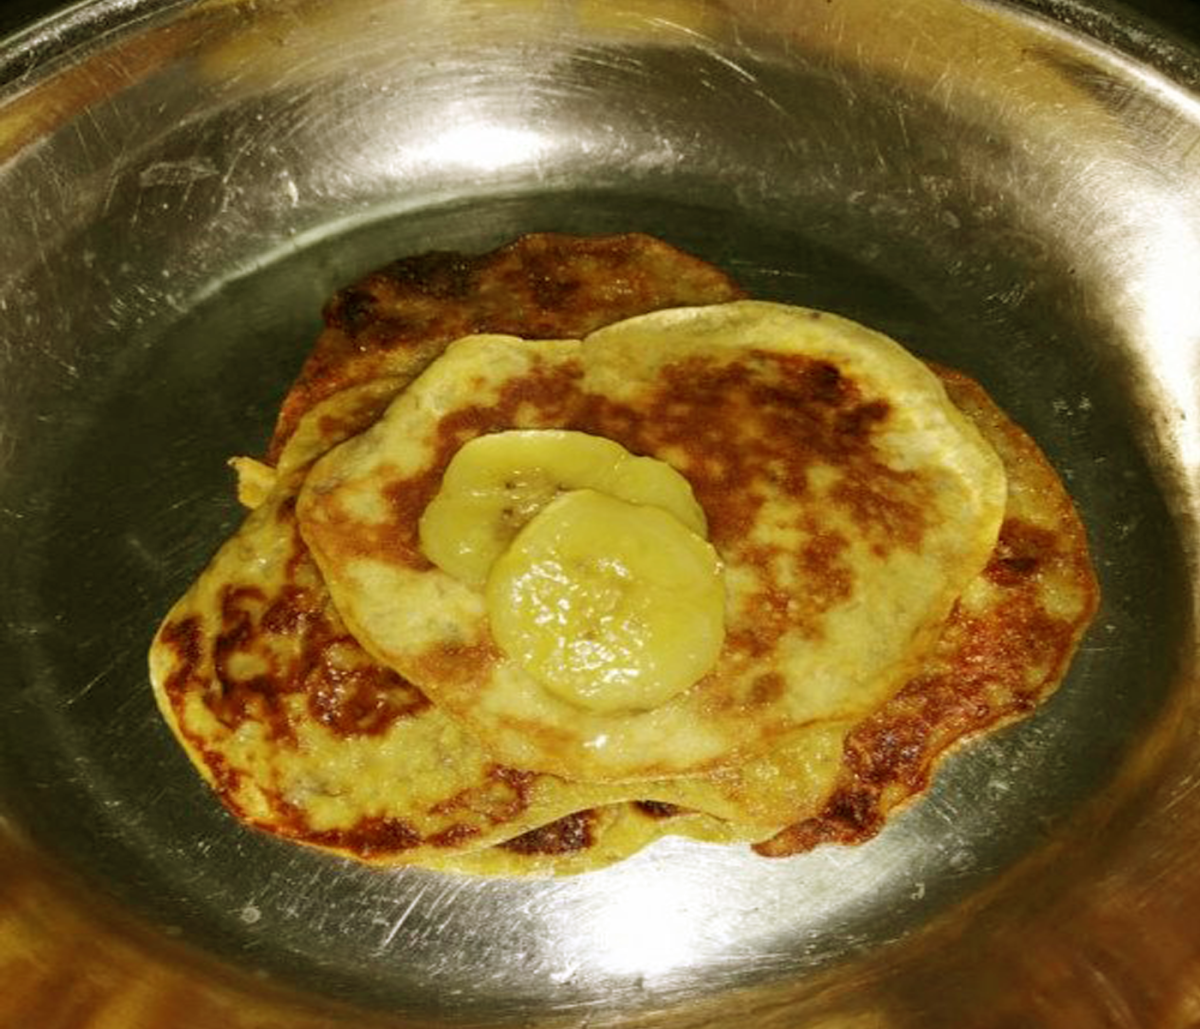 Simple and Tasty Flour-less Banana Pancake with a Protein Boost